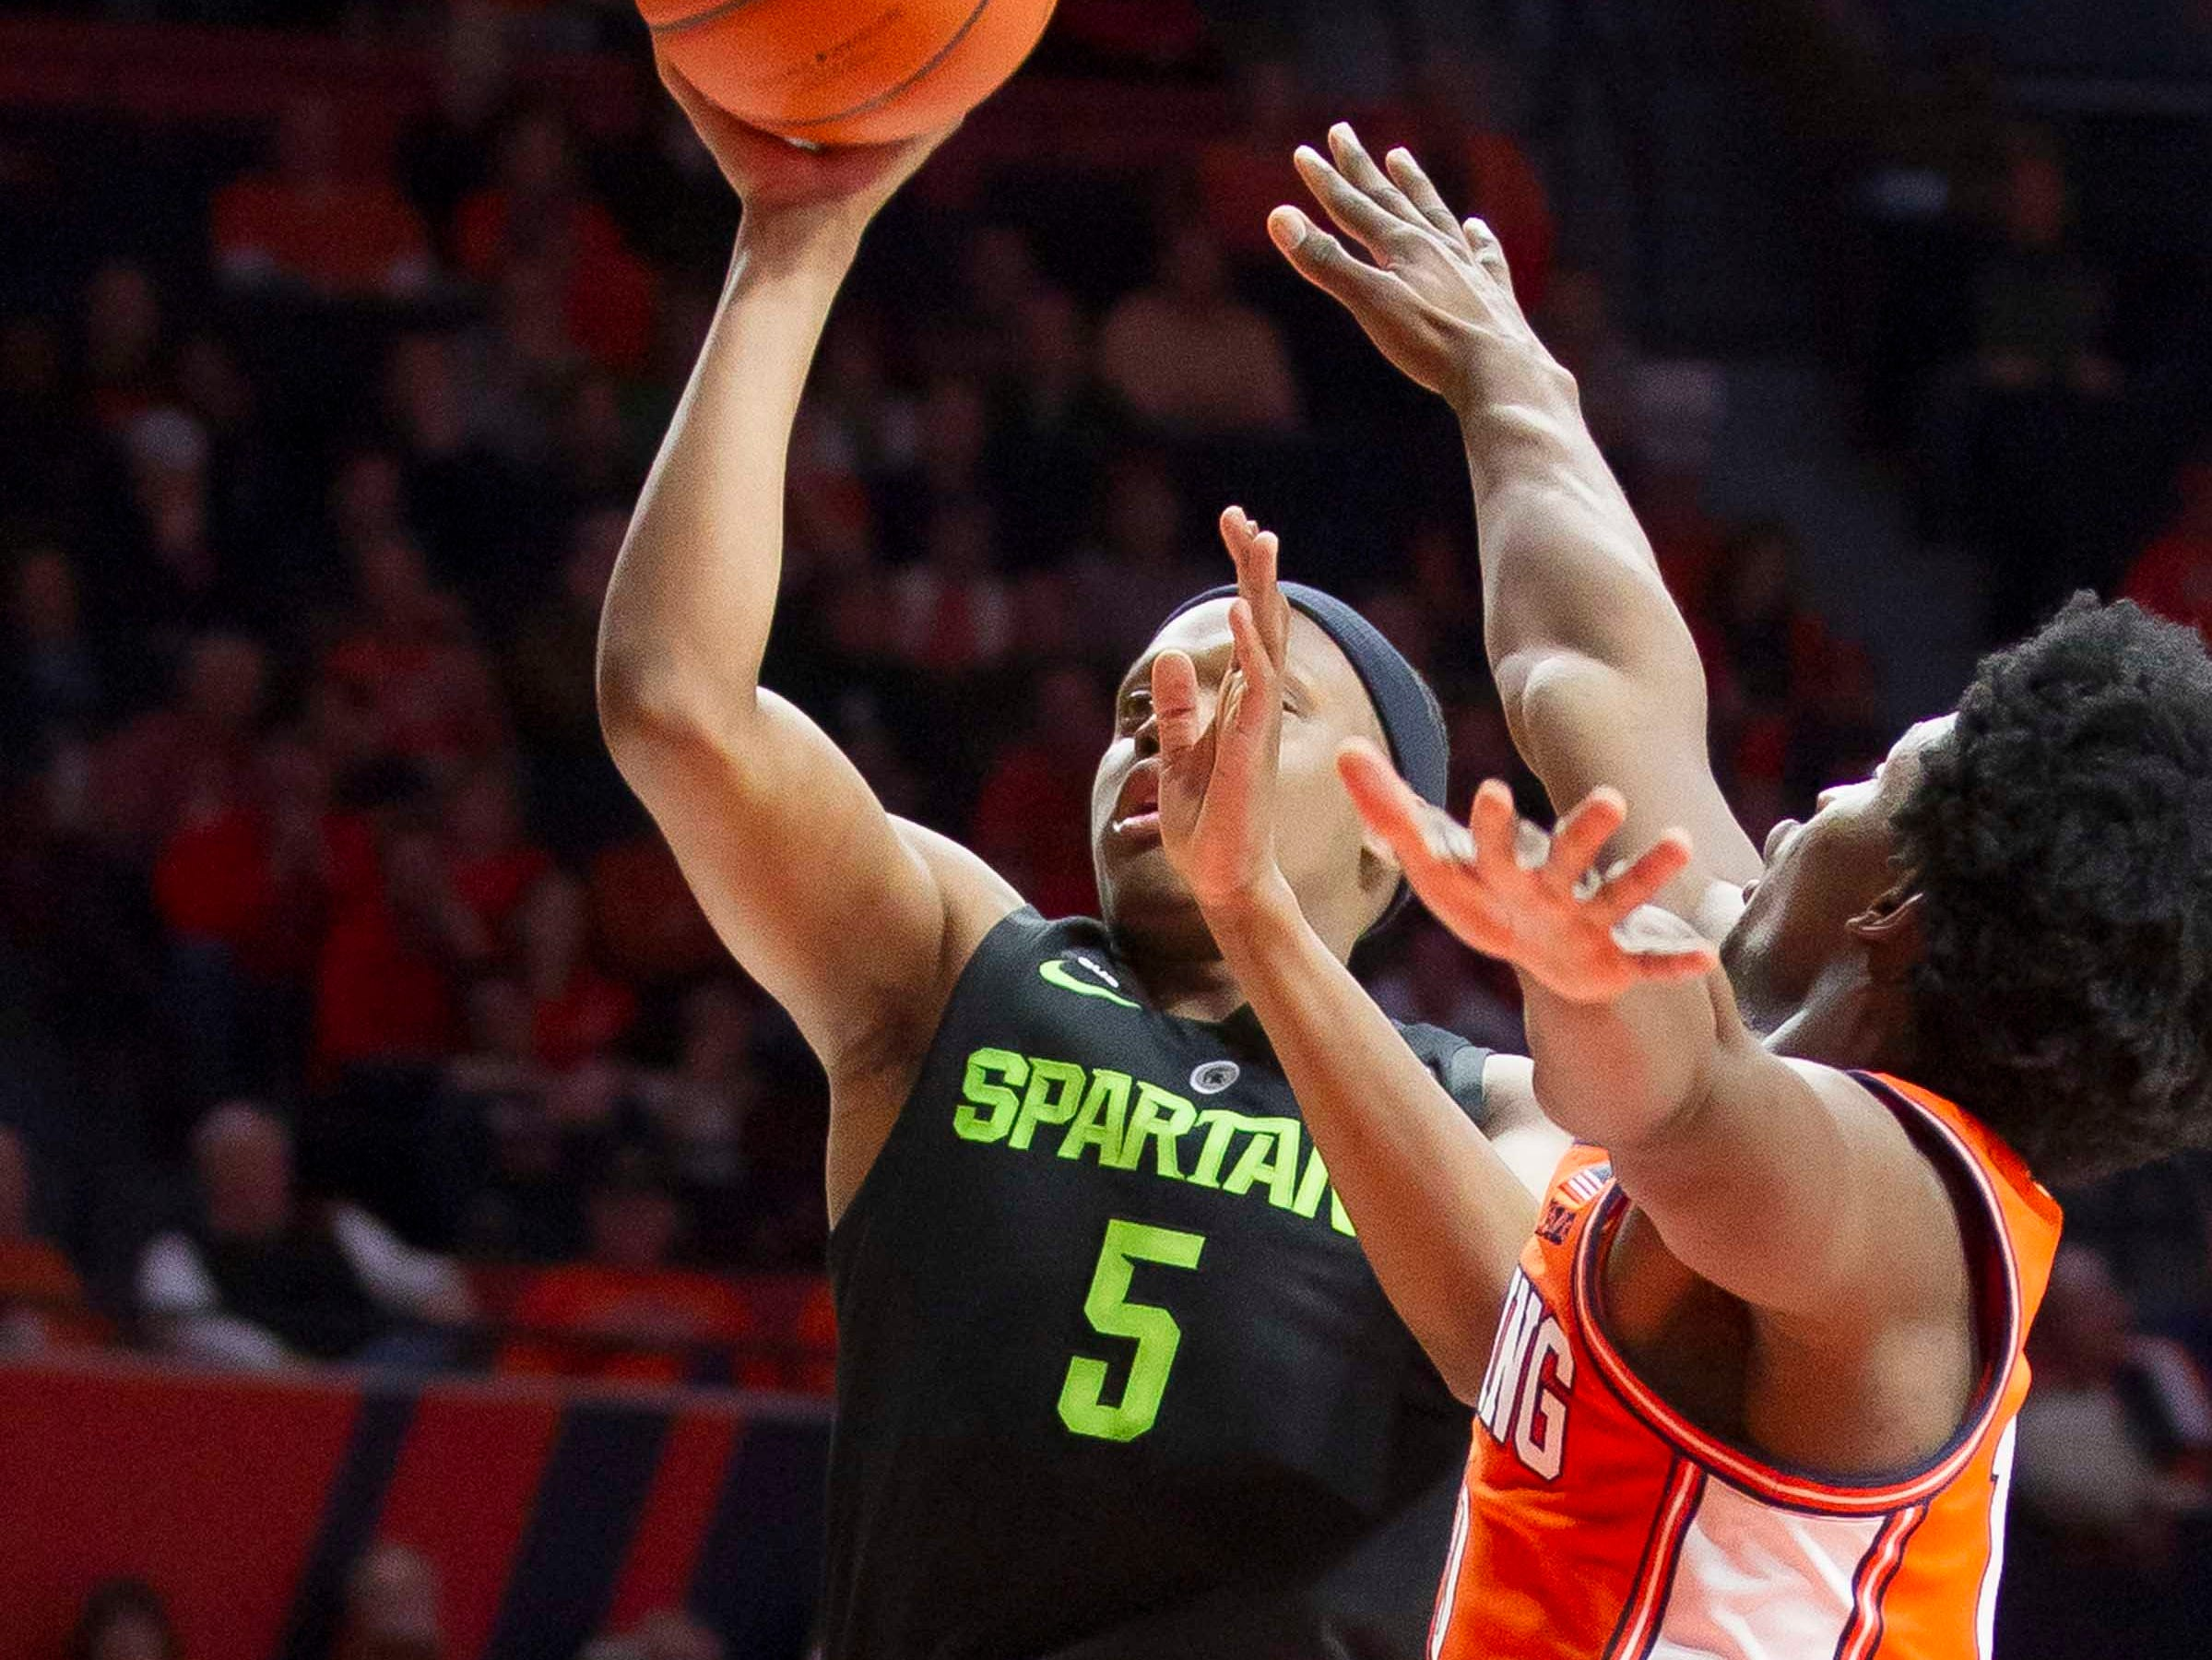 Feb 5, 2019; Champaign, IL, USA; Michigan State Spartans guard Cassius Winston (5) shoots defended by Illinois Fighting Illini guard Andres Feliz (10) during the second half at State Farm Center. Mandatory Credit: Mike Granse-USA TODAY Sports